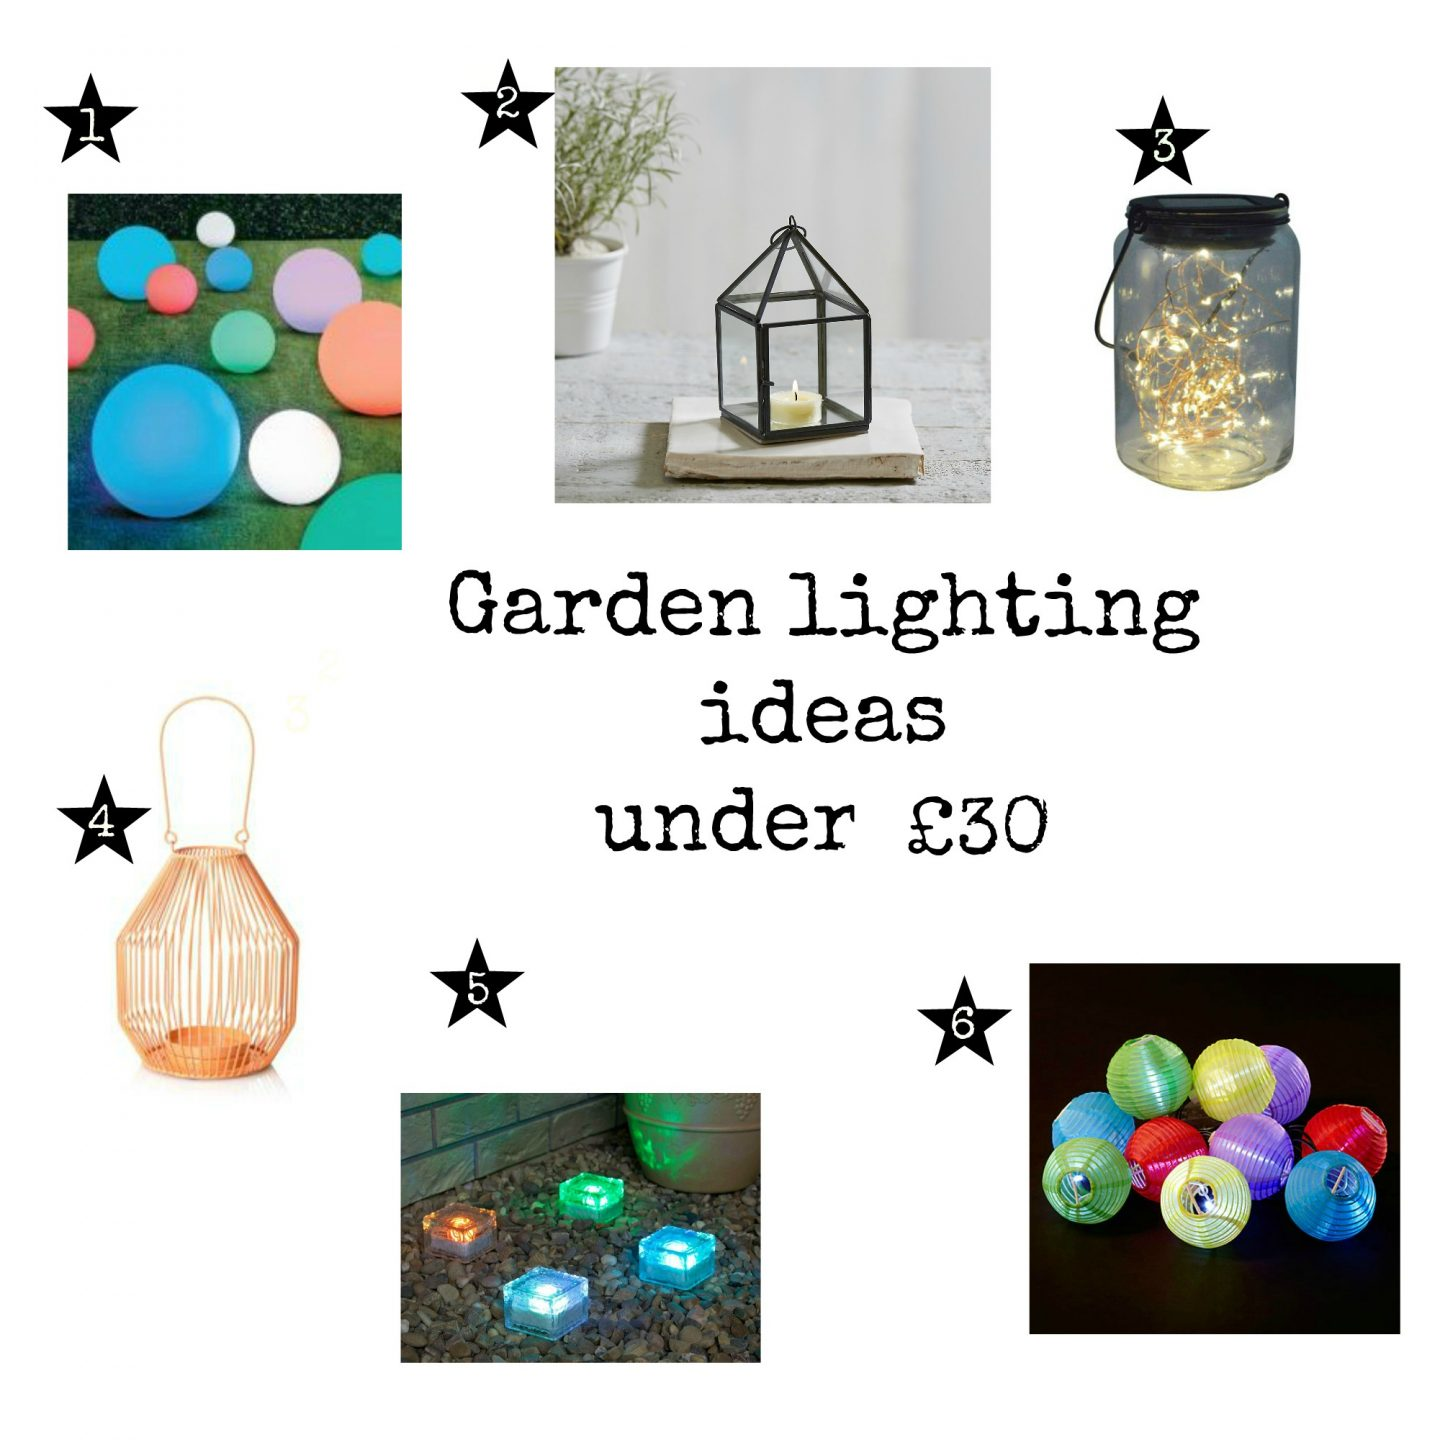 Garden lighting inspiration